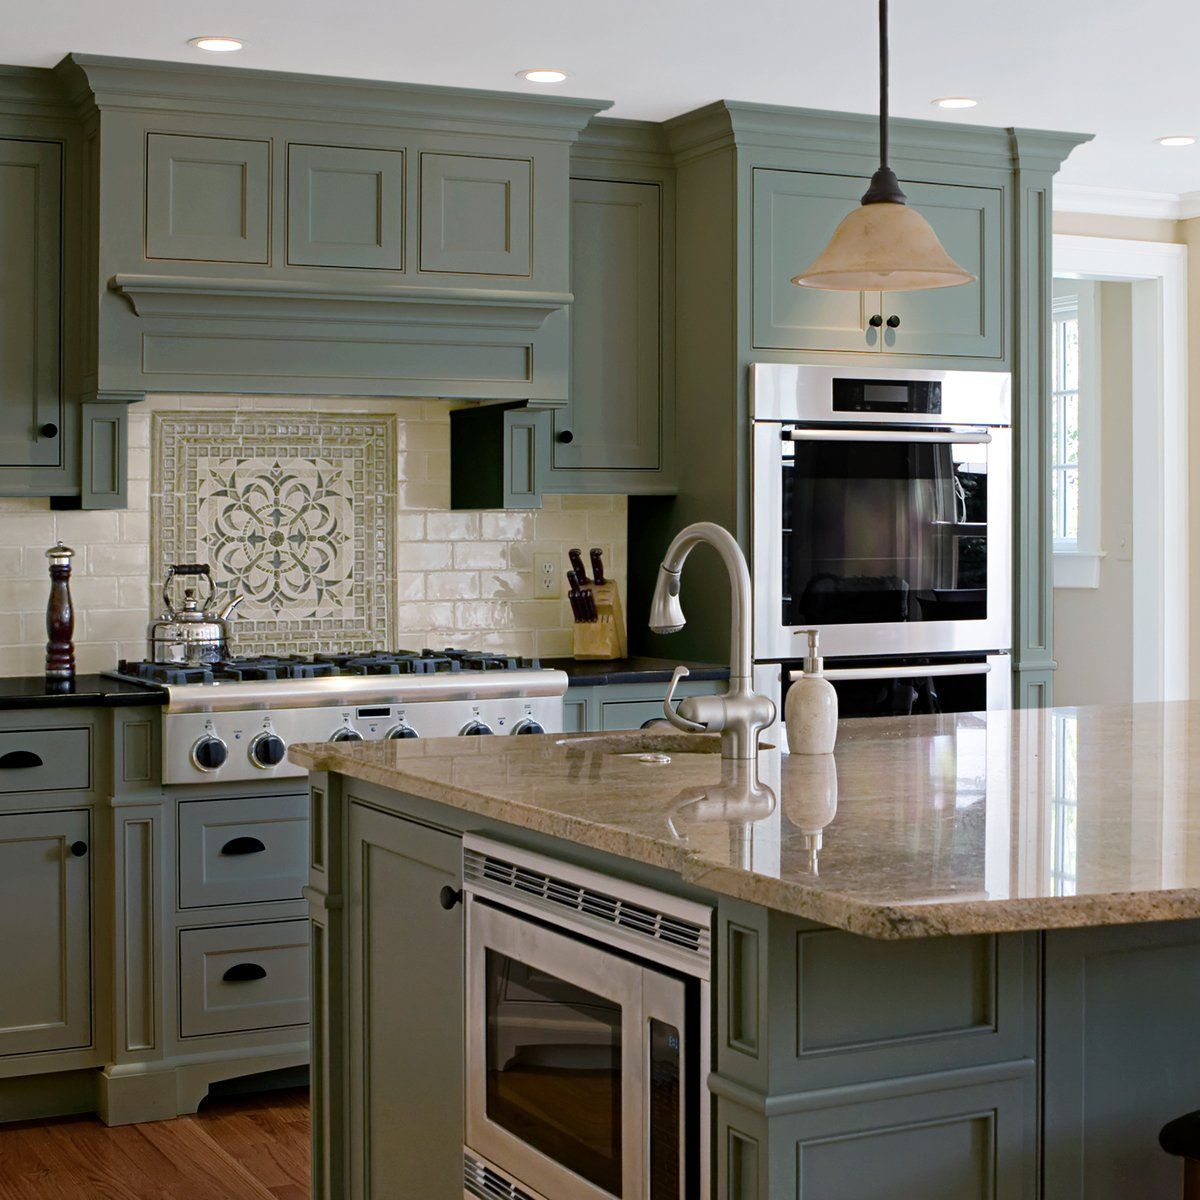 Nuvo Old Sage Cabinet Paint Diy Kitchen Remodel New Kitchen Cabinets Kitchen Renovation